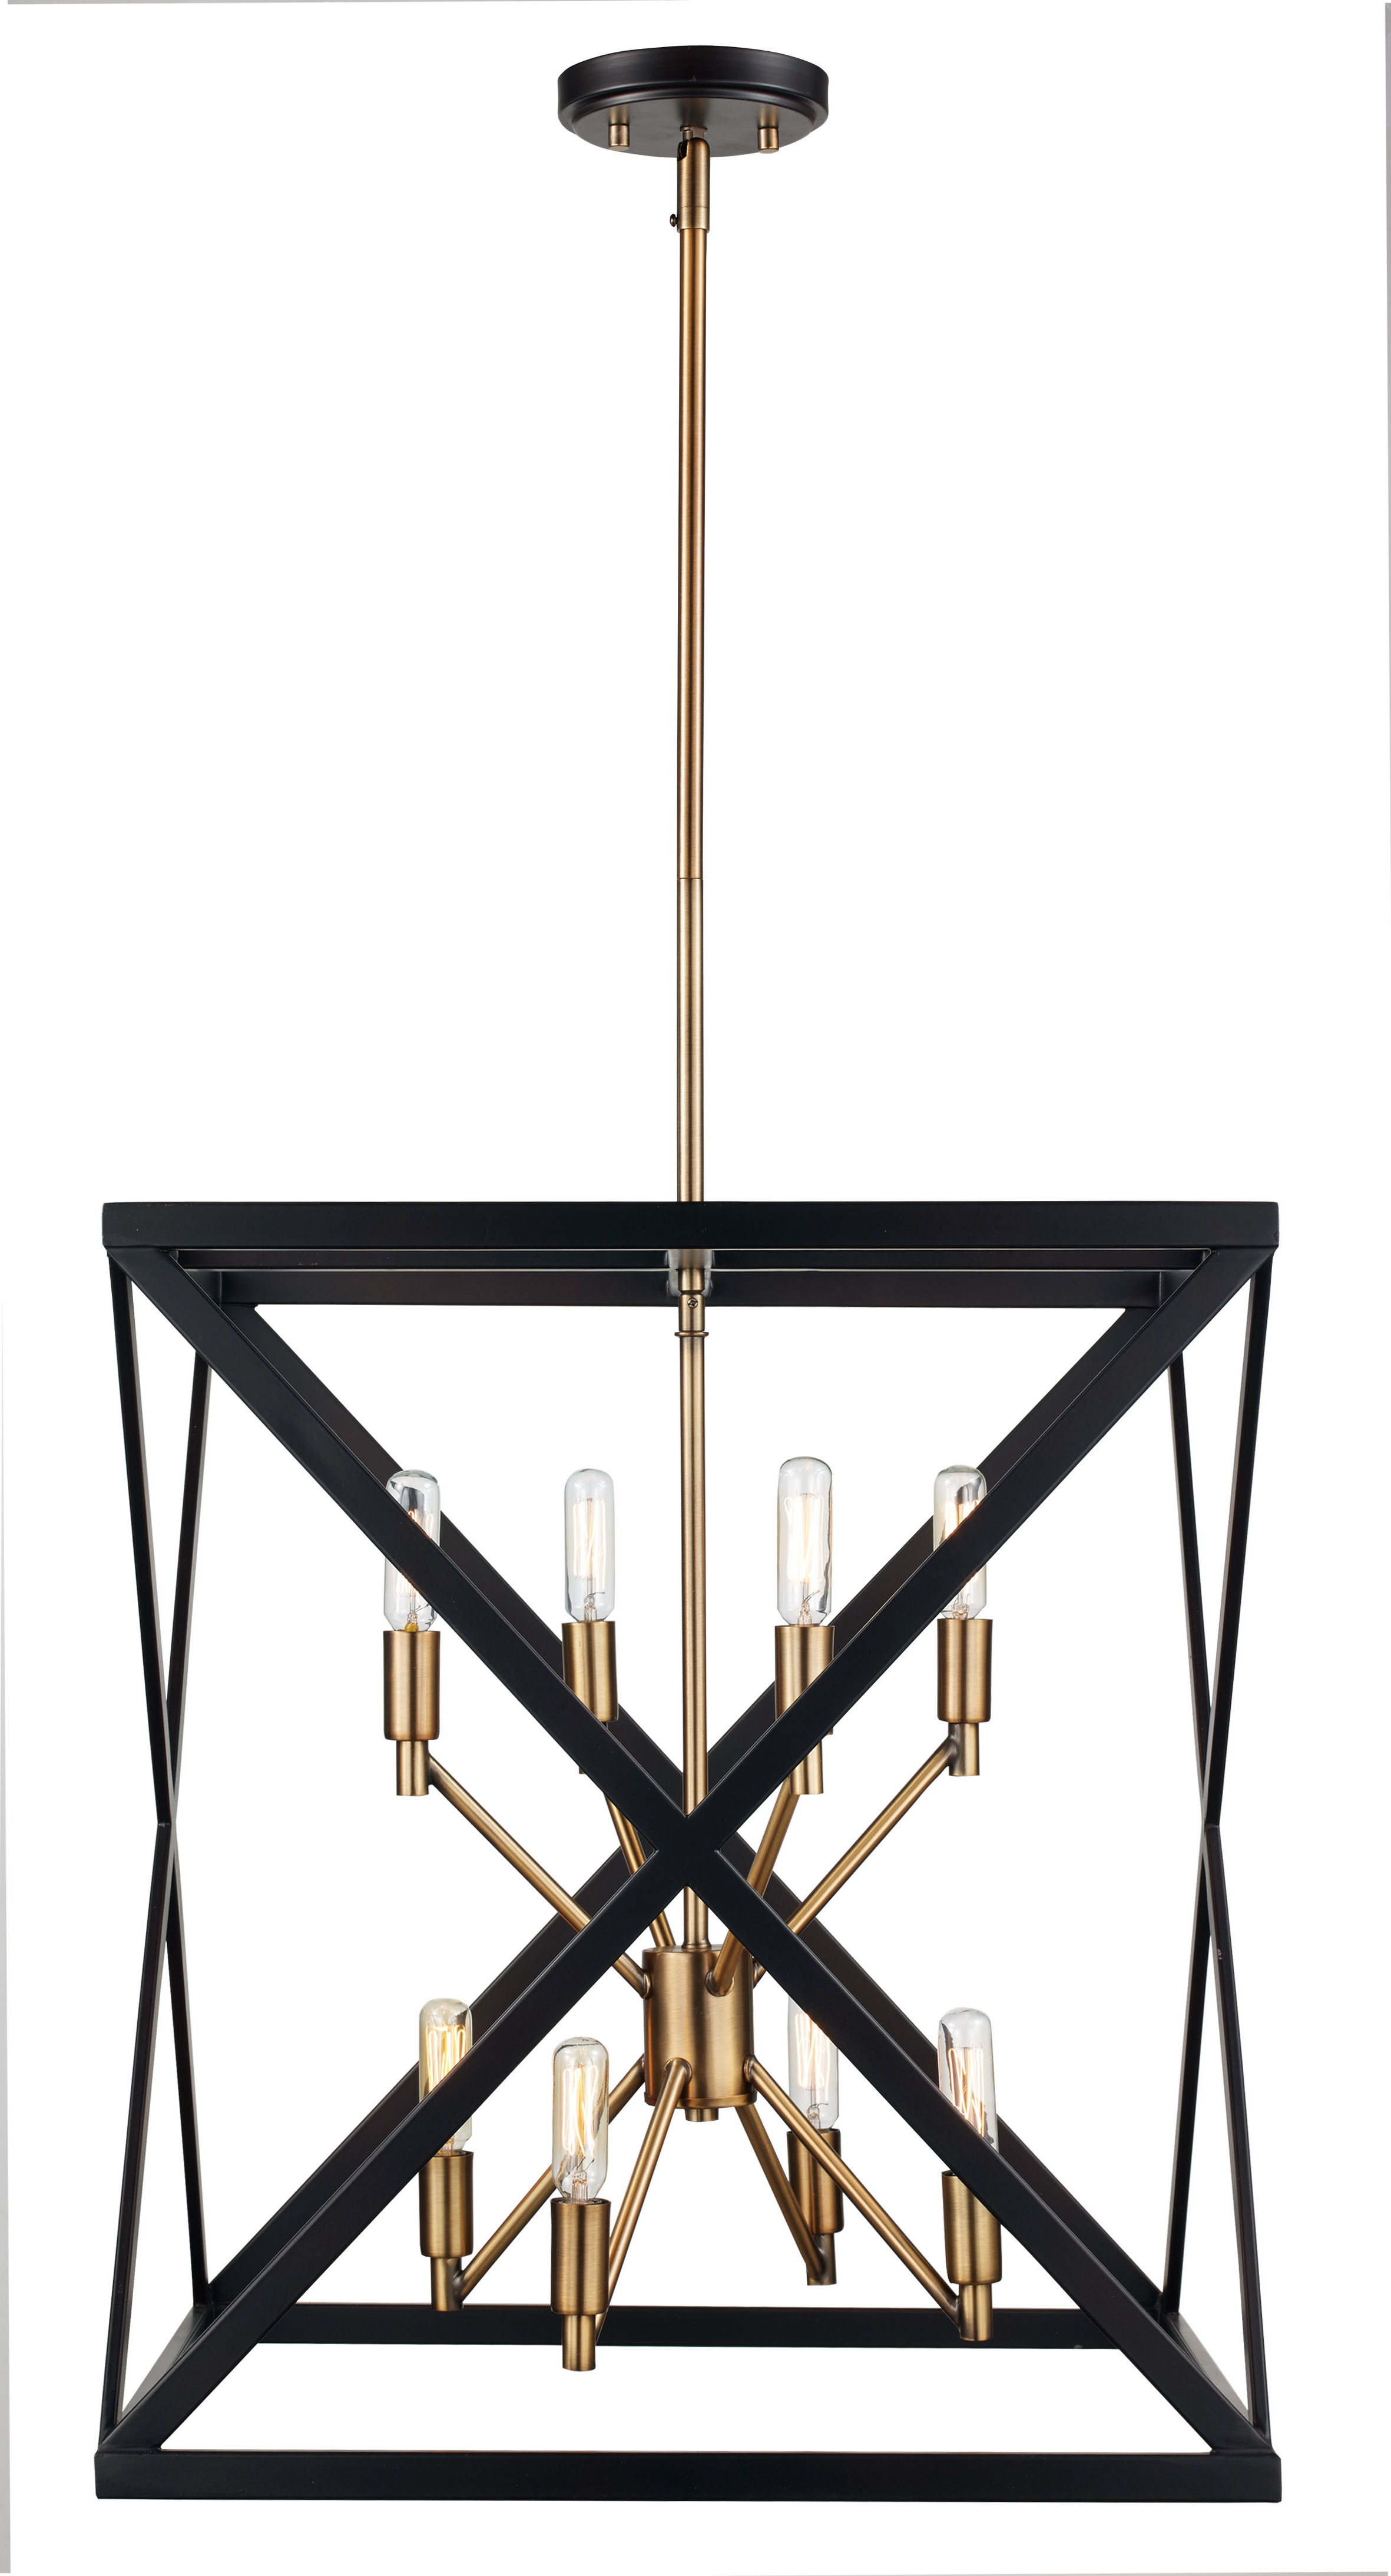 Widely Used Tanksley 8 Light Square/rectangle Chandelier Pertaining To Delon 4 Light Square Chandeliers (Gallery 20 of 20)